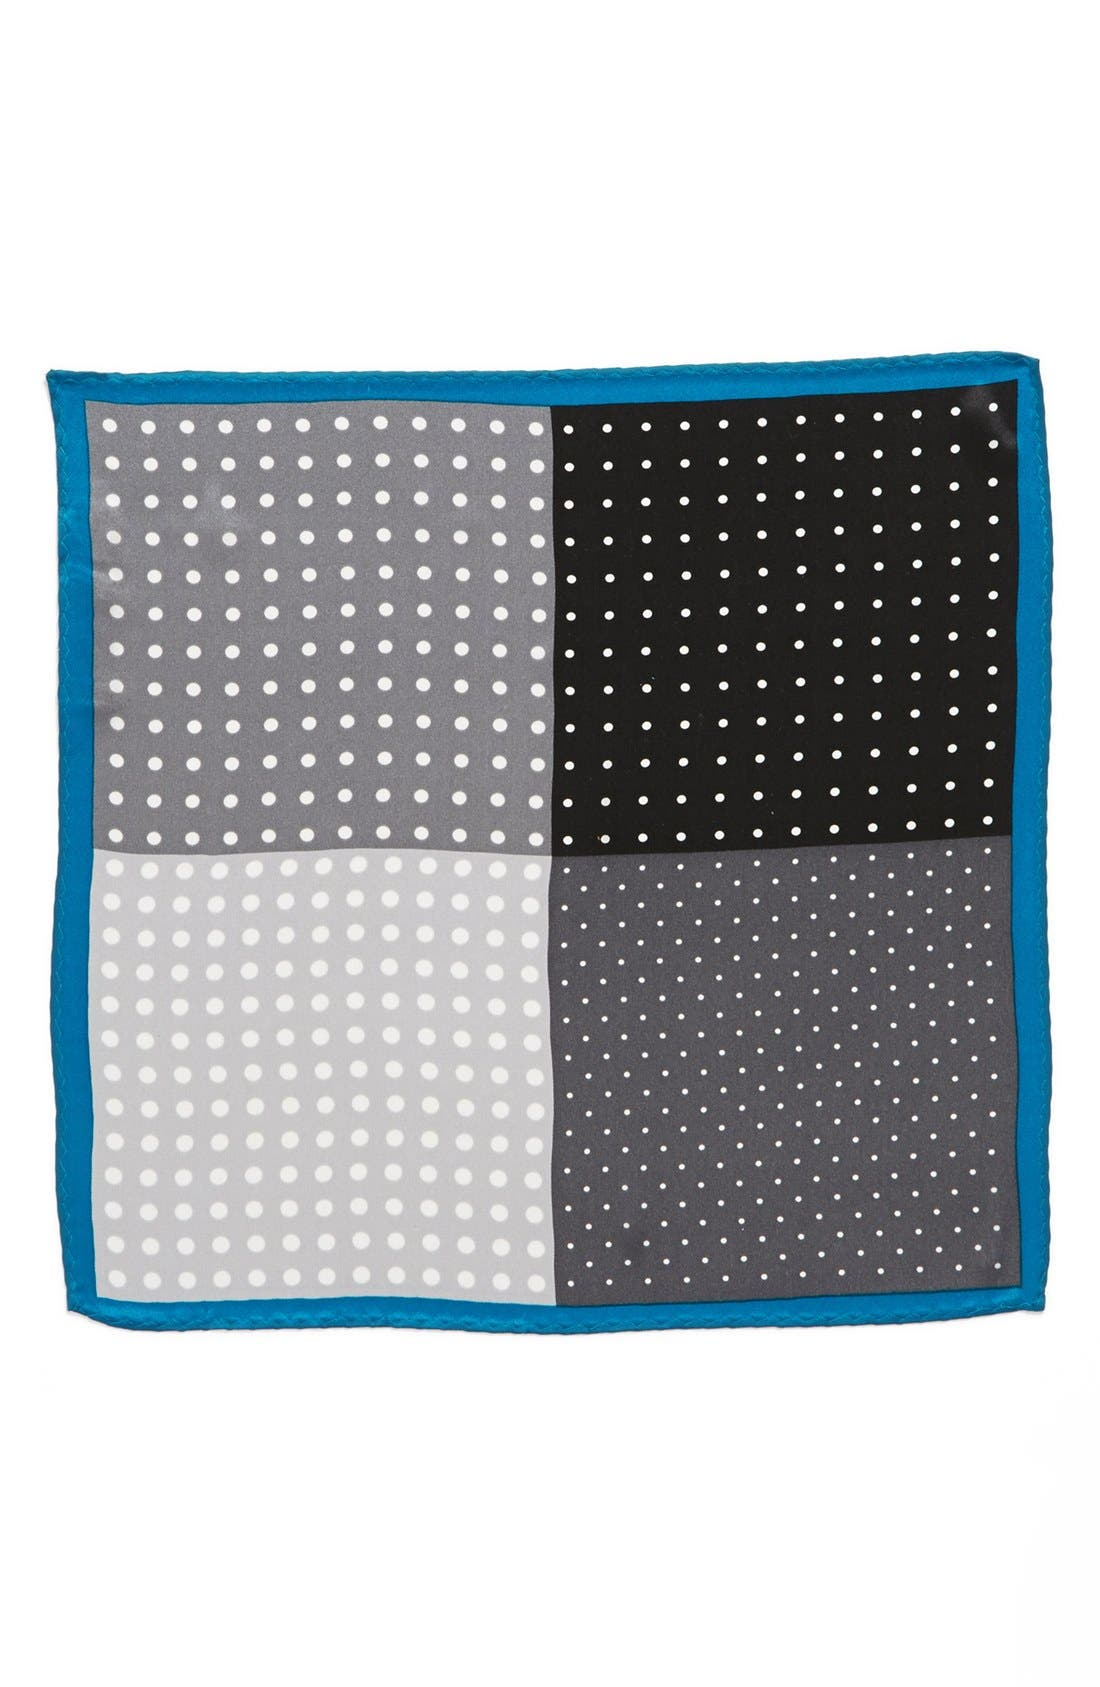 Alternate Image 1 Selected - Original Penguin 'Amsterdam Dot' Silk Pocket Square